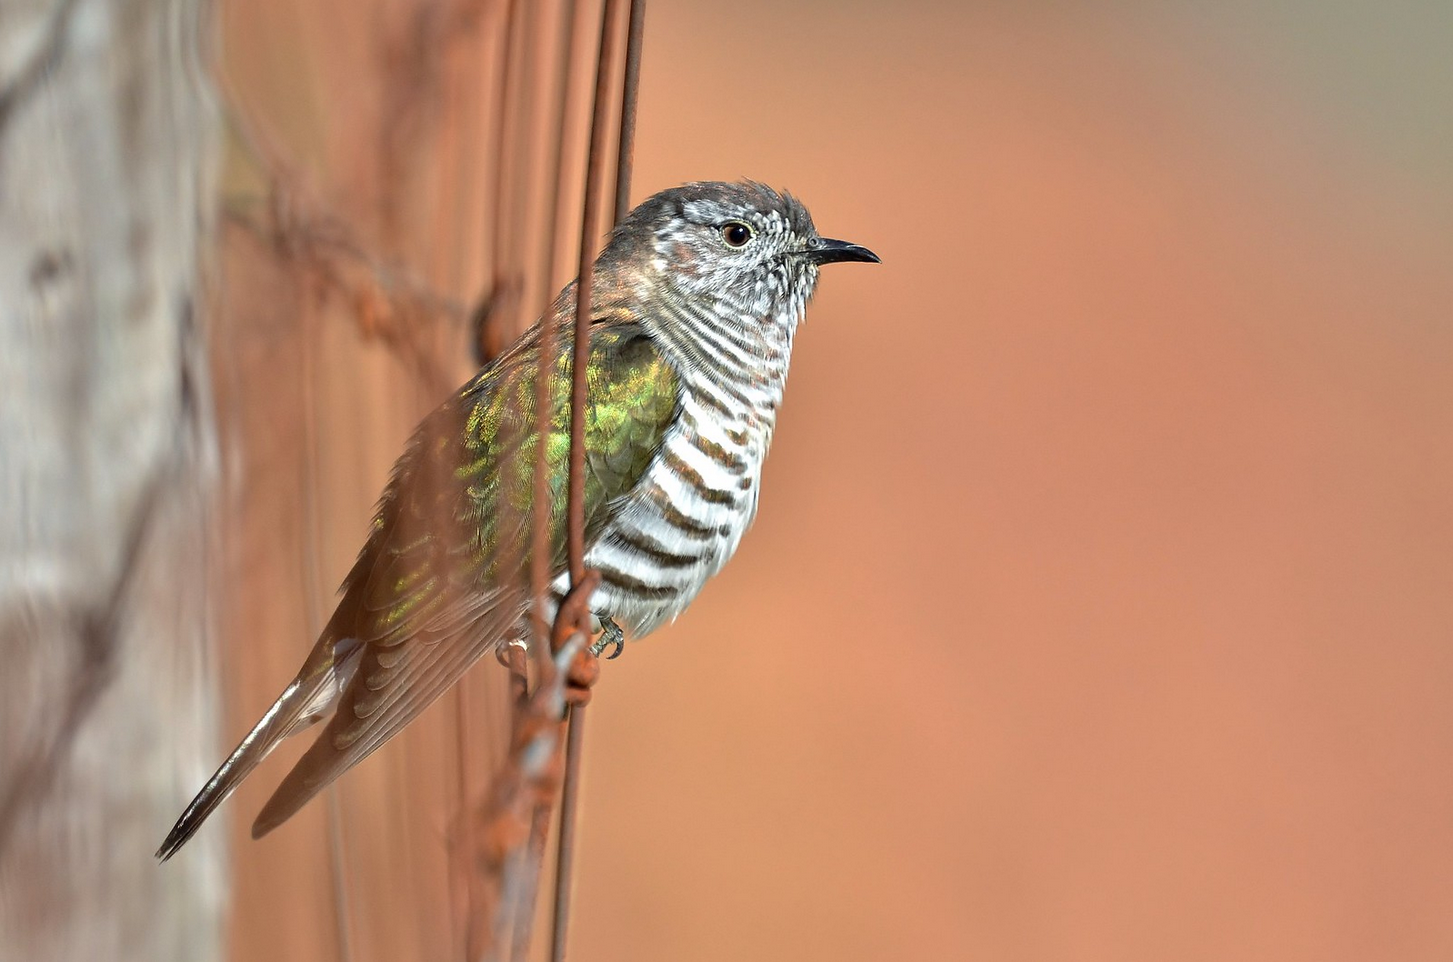 Shining cuckoo (Flickr photo by Laurie Boyle - CC BY-SA 2.0)